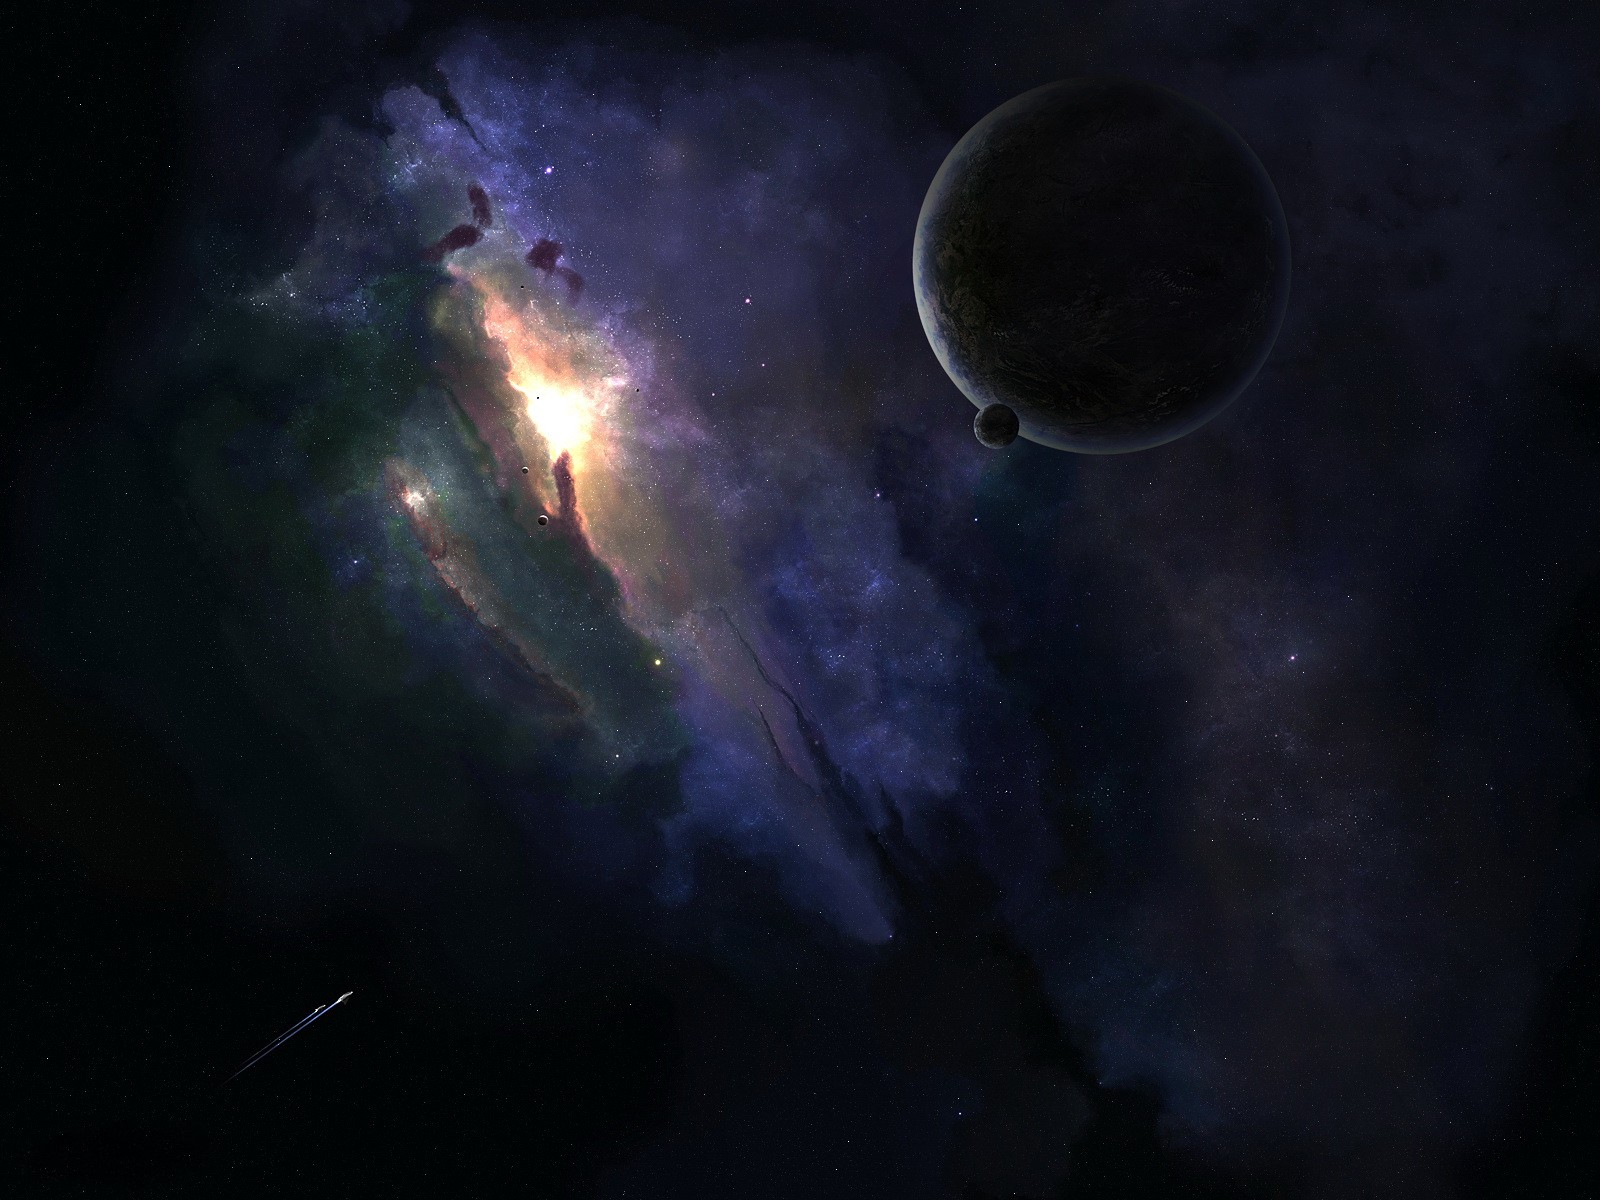 dark space wallpaper 1600 x 1200 pixels download hd dark space 1600x1200